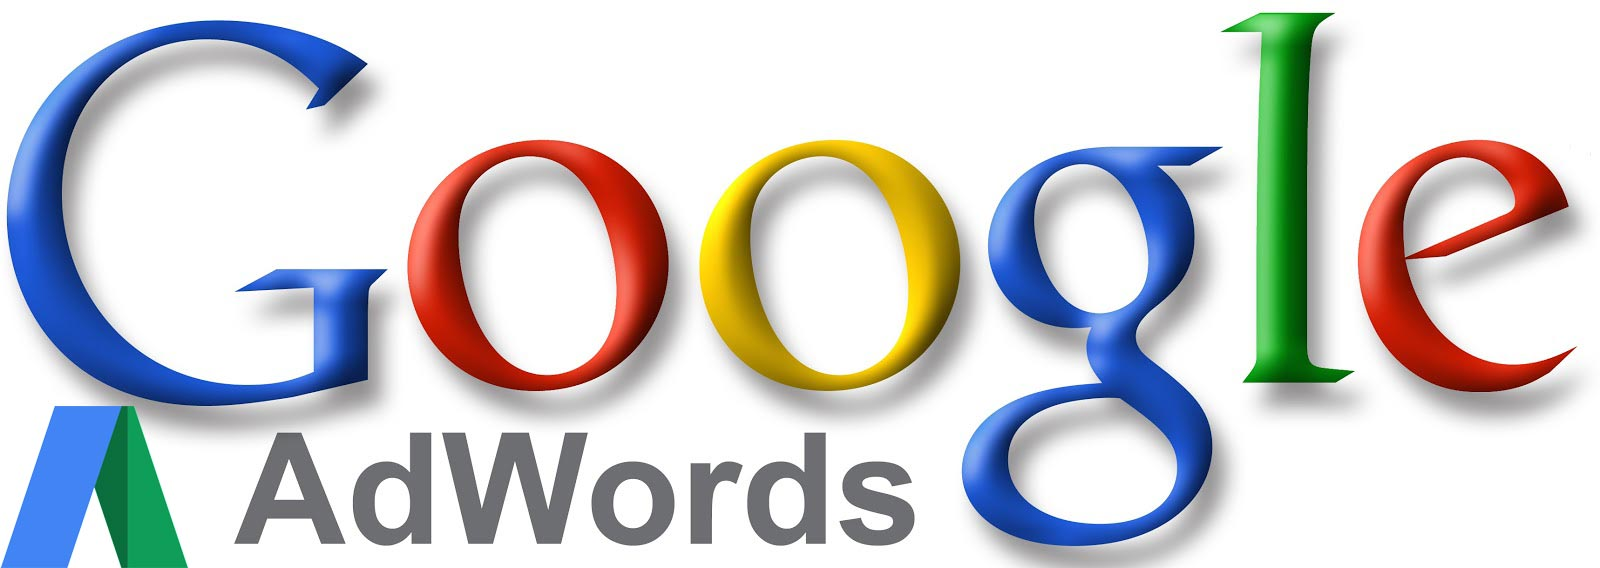 Google Adwords nije SEO Optimizacija?